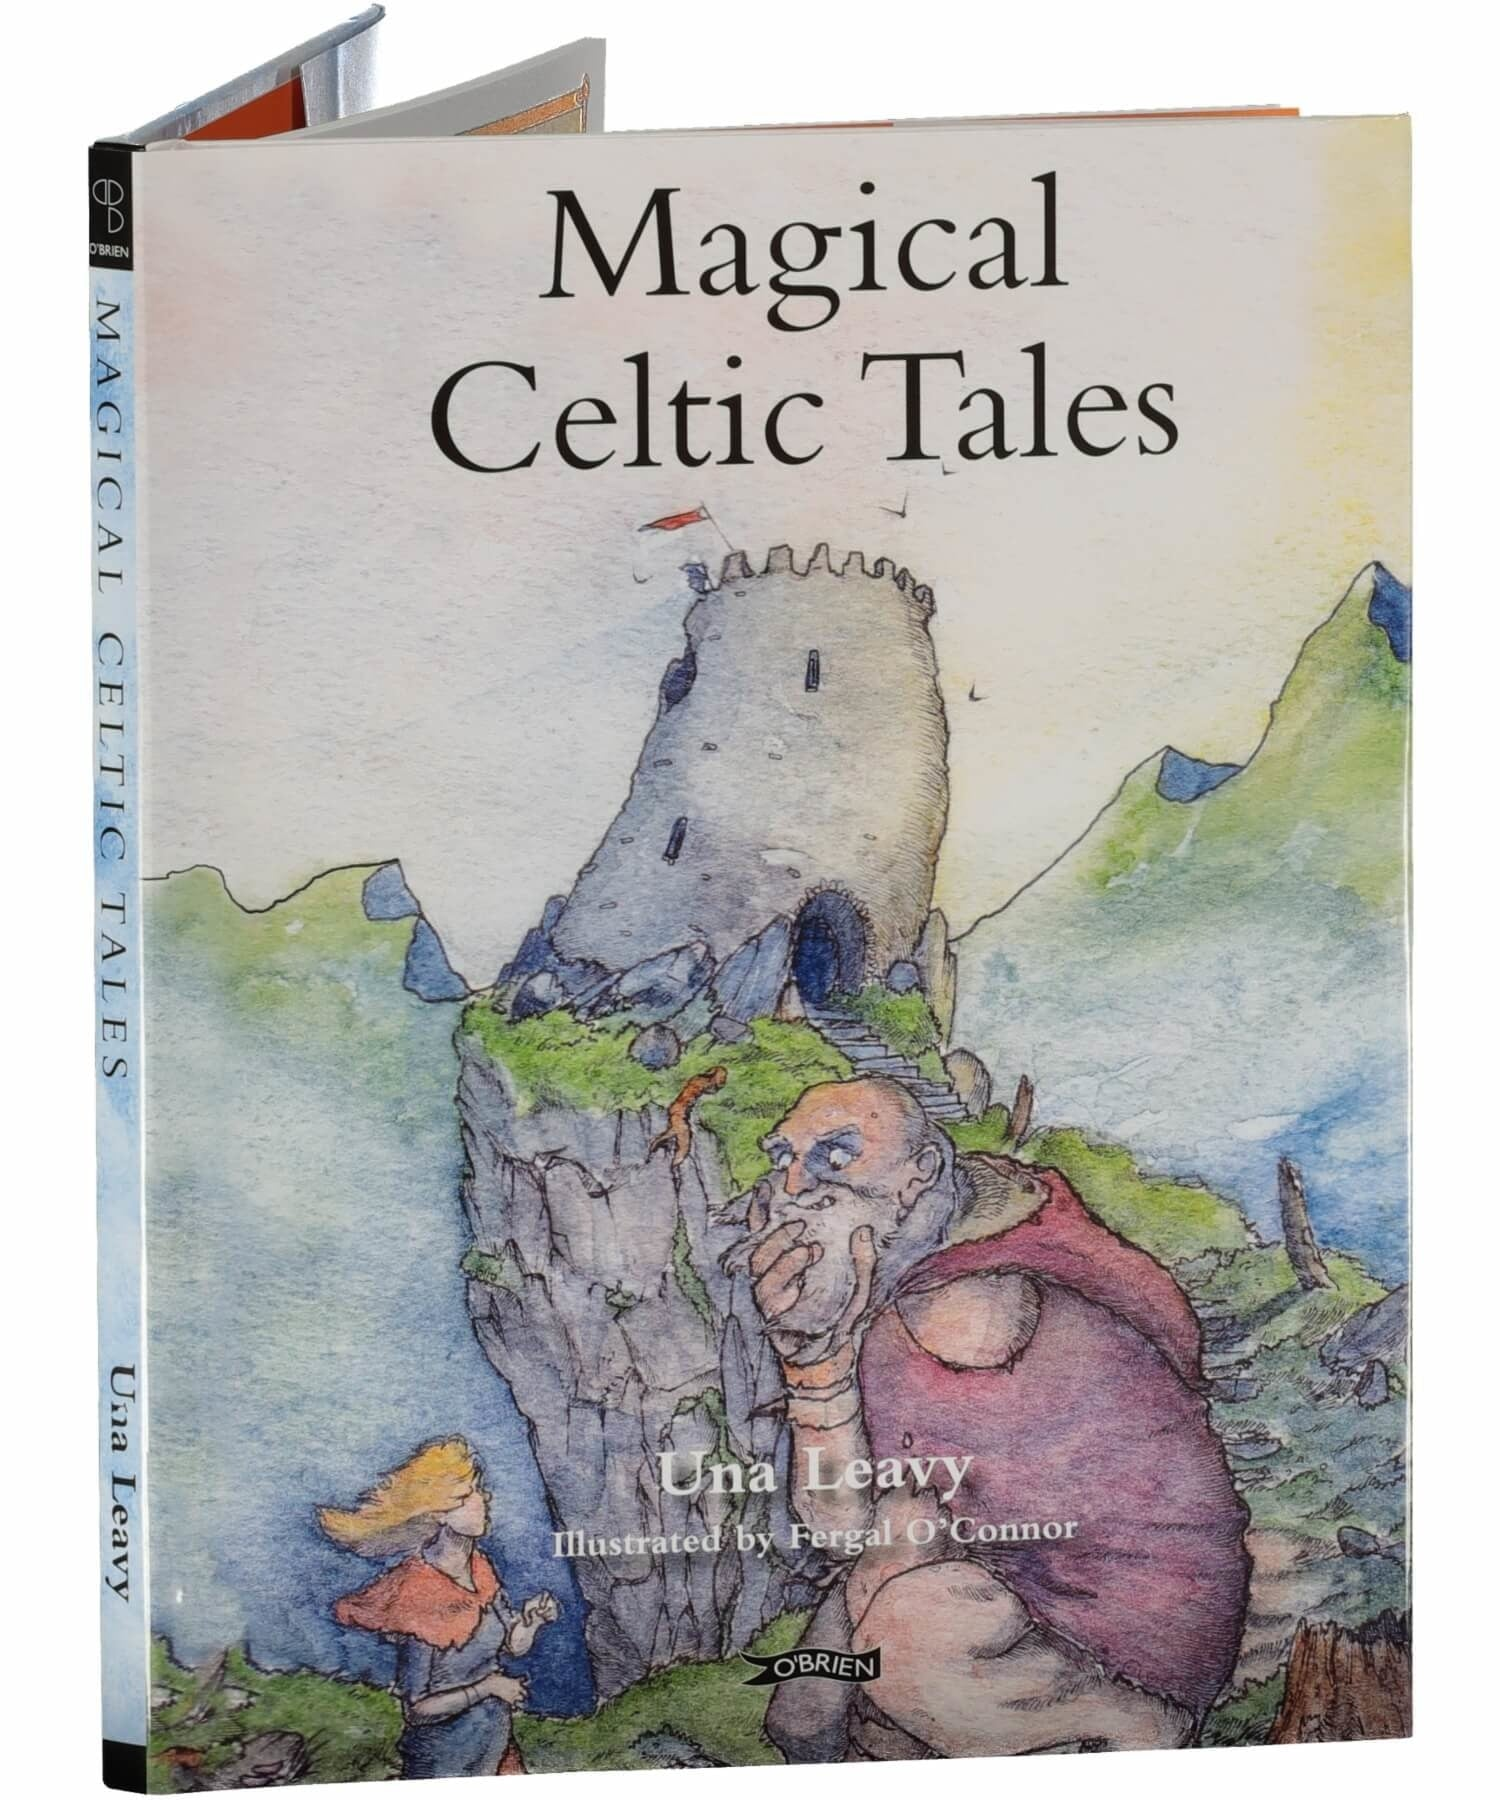 Magical Celtic Tales - [Gill & MacMillan] - Books & Stationery - Irish Gifts